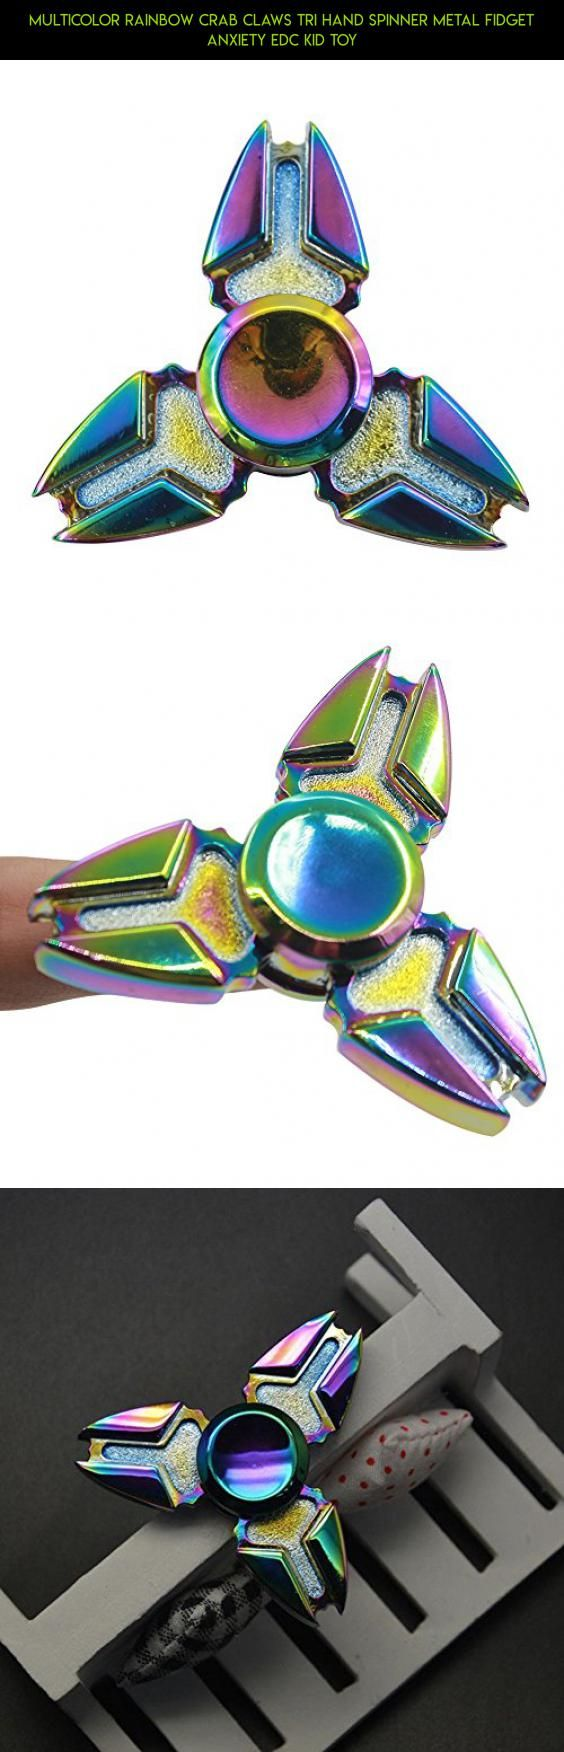 Multicolor Rainbow Crab Claws Tri Hand Spinner Metal Fidget Anxiety EDC Kid Toy #claw #plans #technology #racing #products #spinner #drone #kit #parts #rainbow #tech #shopping #camera #gadgets #fpv